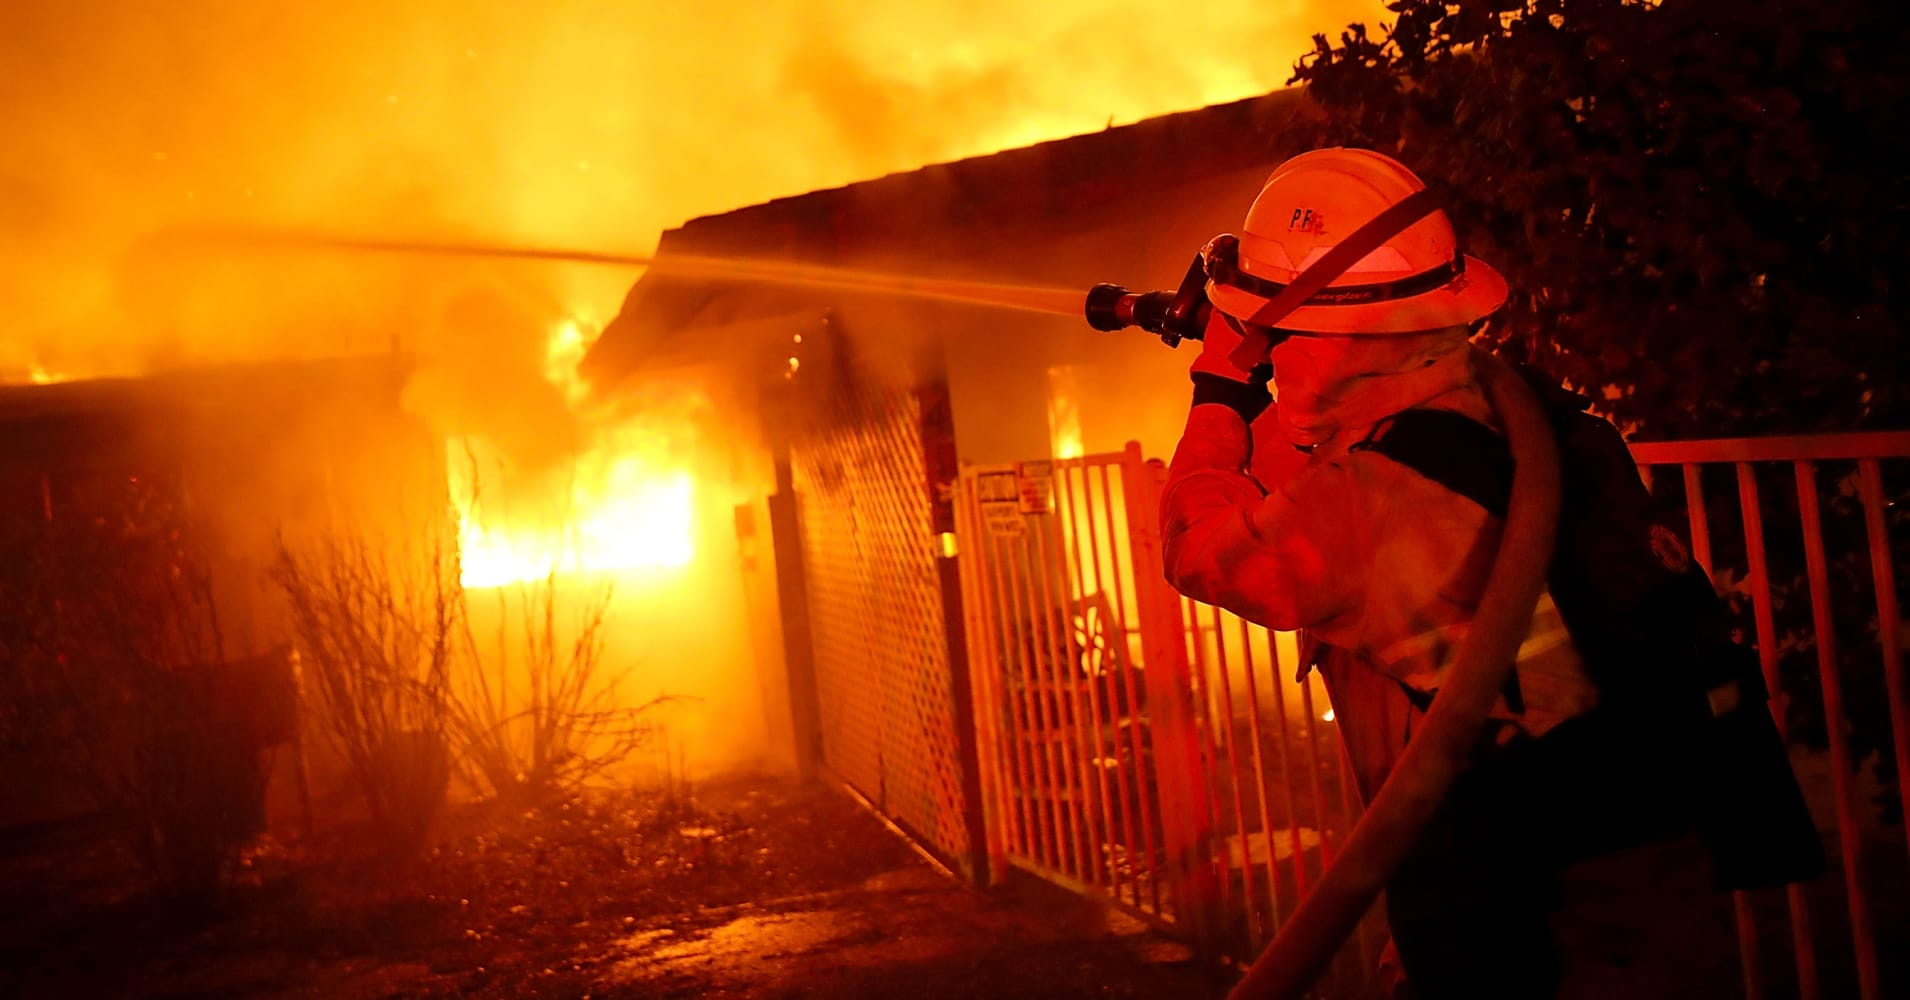 PG&E plunges 25% amid disclosure of an 'electric incident' just before wildfire